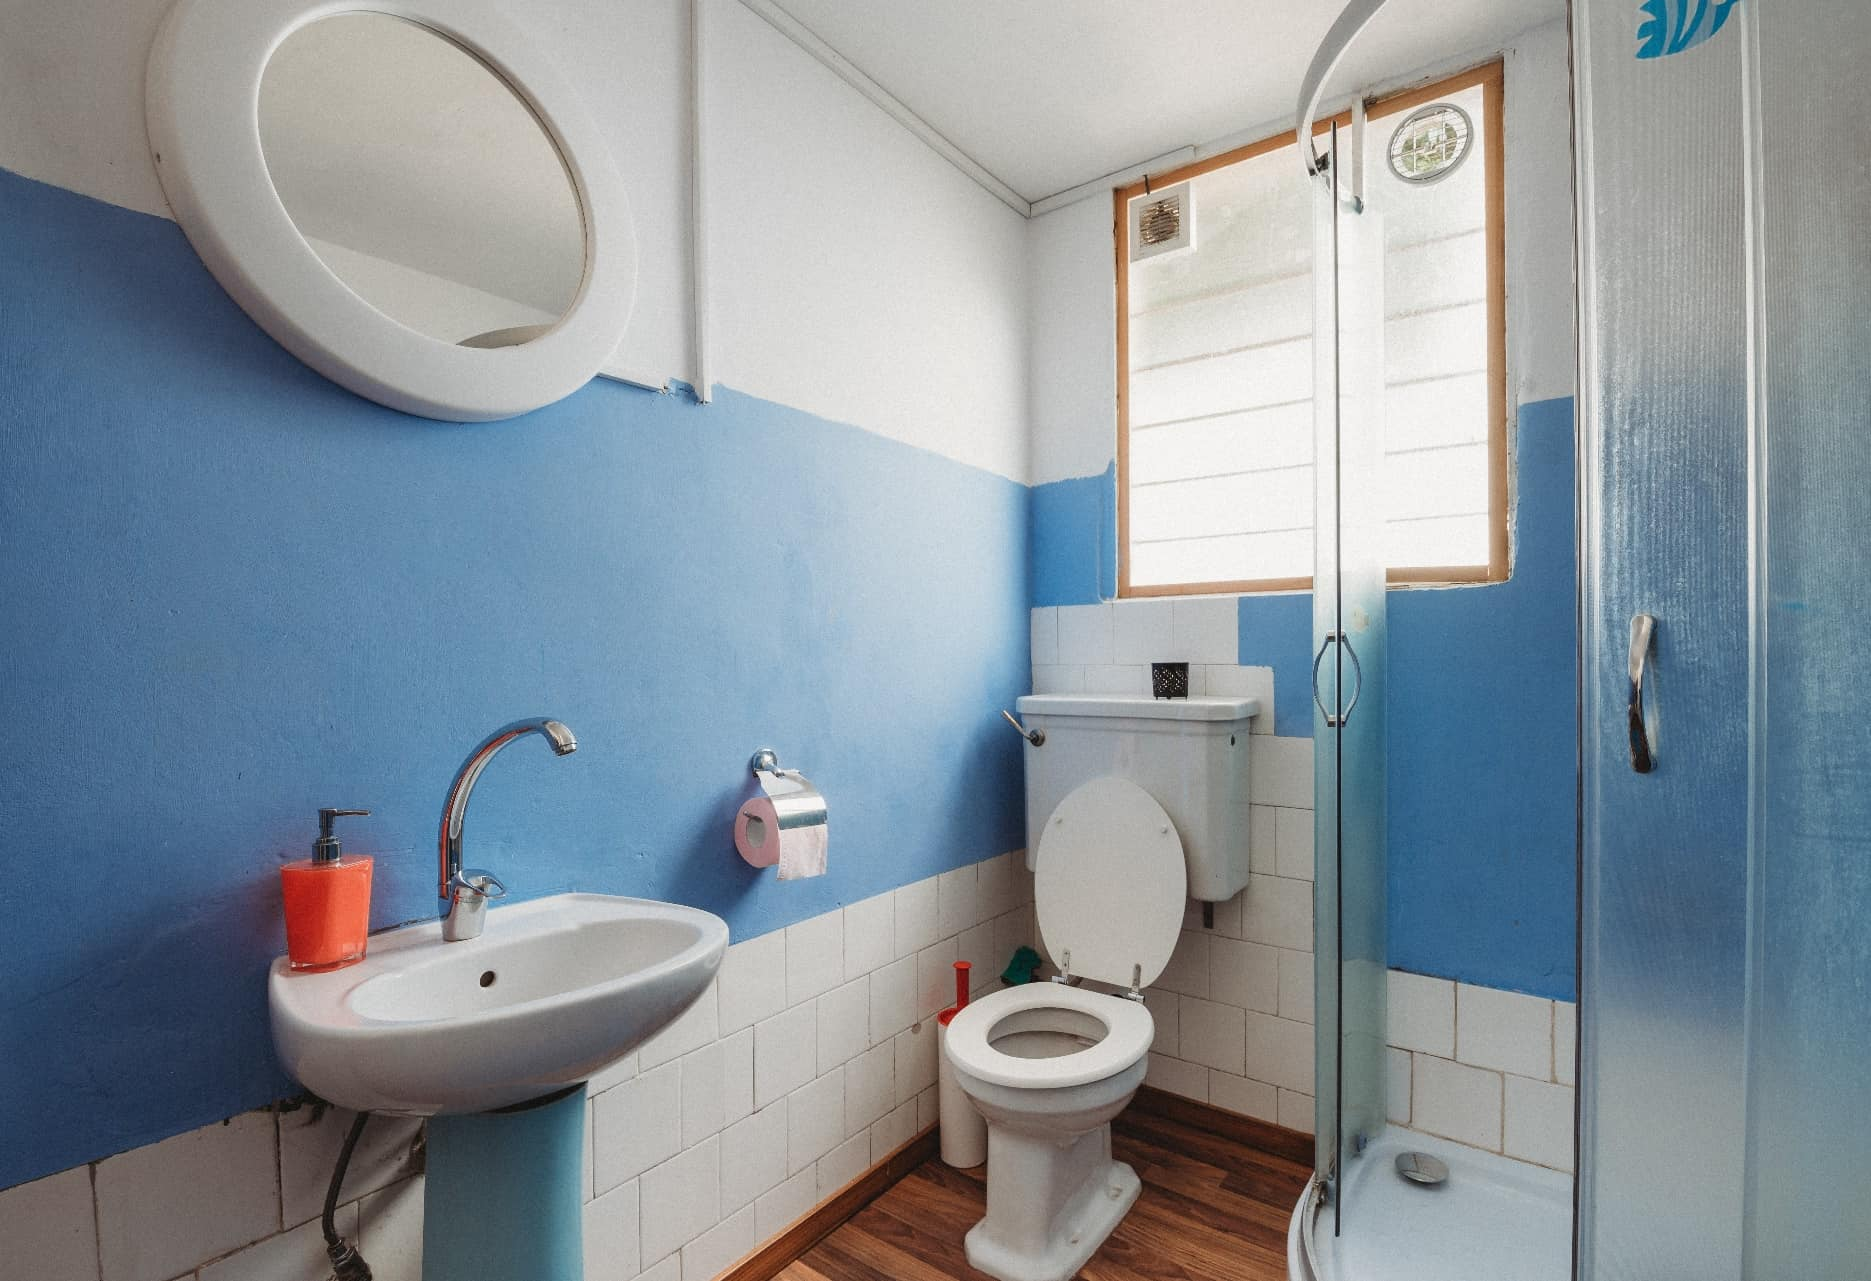 Why Compact Toilets Are Best for Small Bathrooms. Simple casual design of the room with blue colored strip on the wall